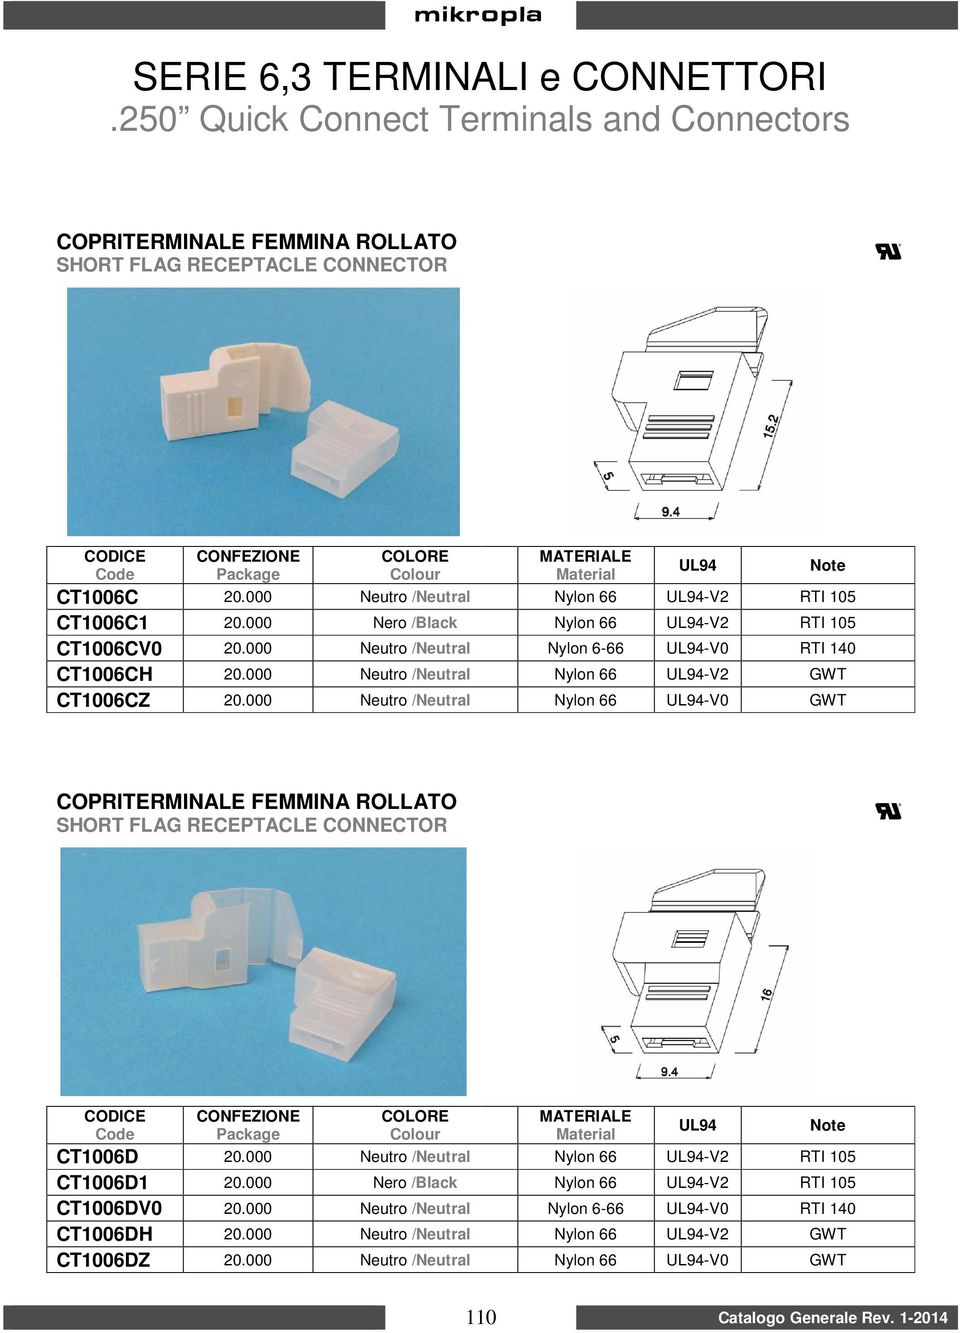 000 Neutro /Neutral Nylon 66 -V0 GWT COPRITERMINALE FEMMINA ROLLATO SHORT FLAG RECEPTACLE CONNECTOR CT1006D 20.000 Neutro /Neutral Nylon 66 -V2 RTI 105 CT1006D1 20.